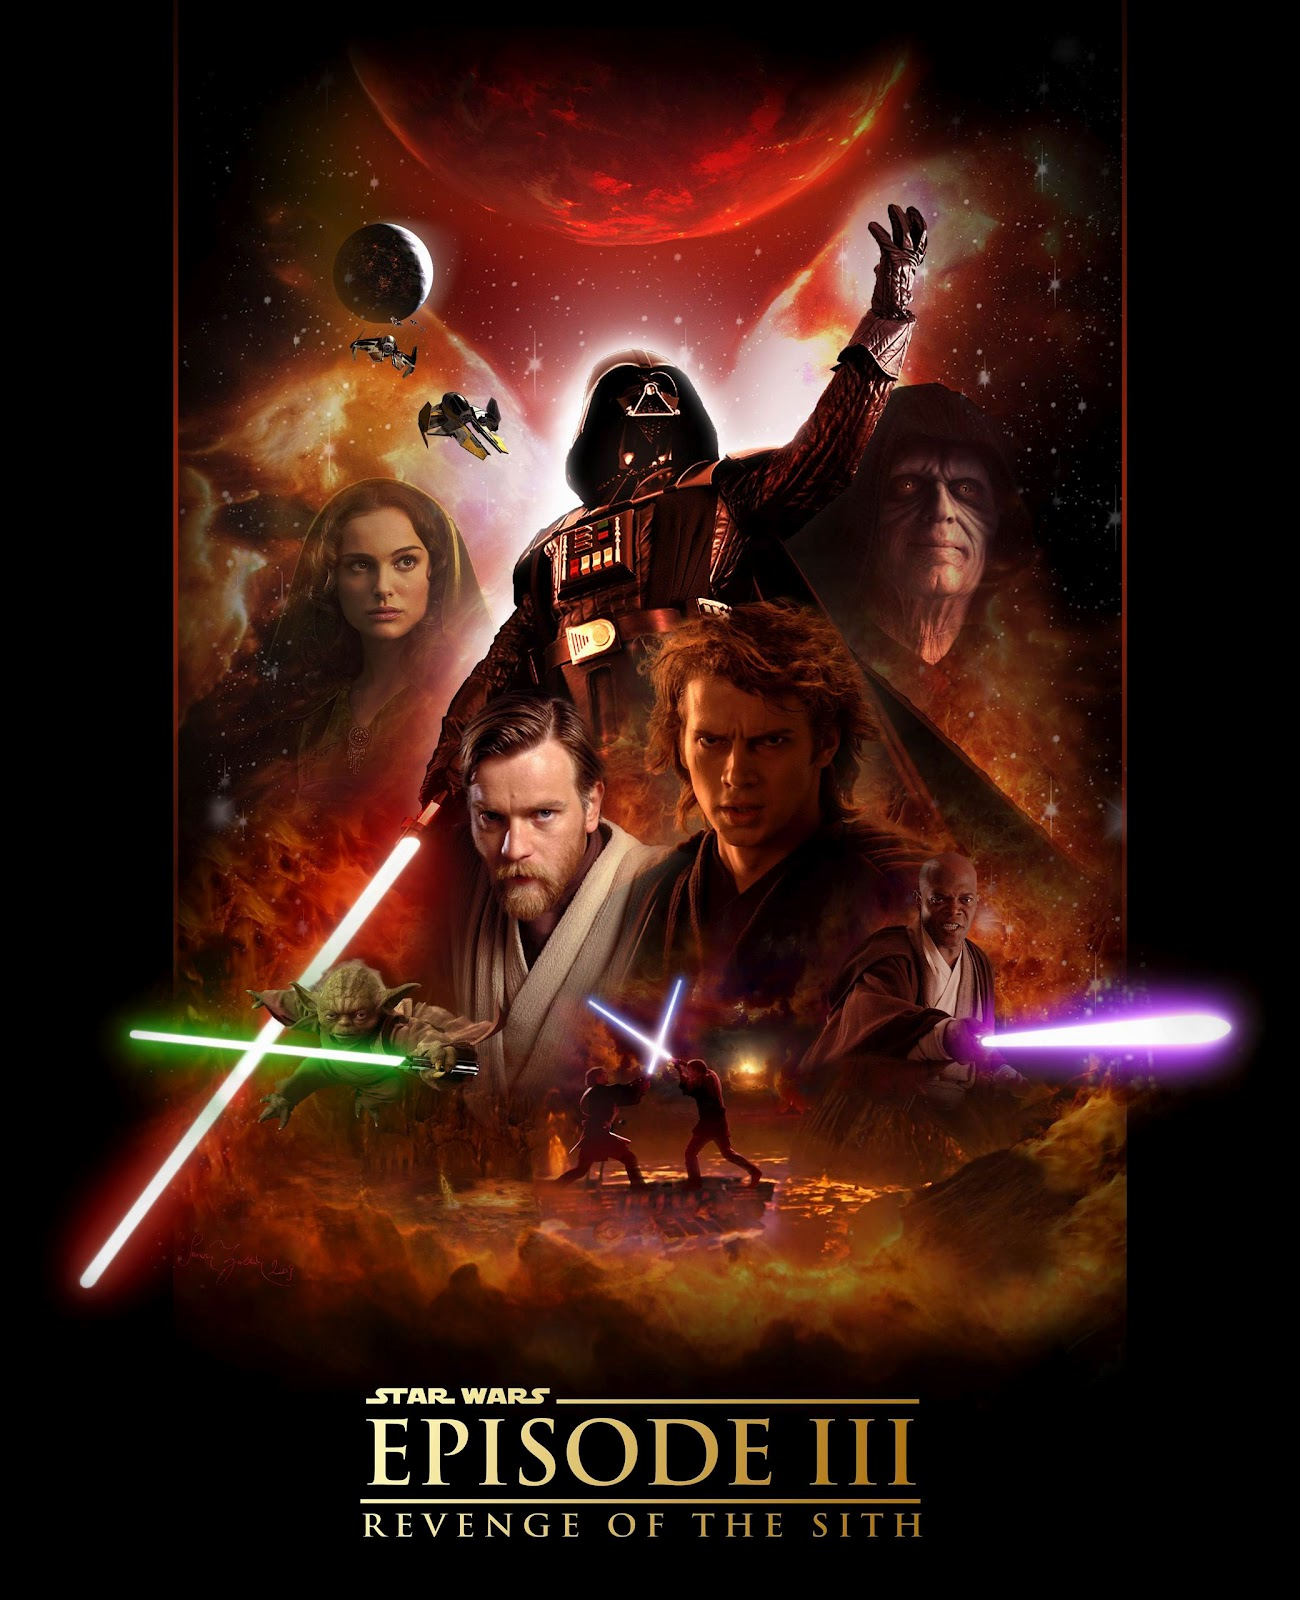 Star wars: episode iii - revange of the sith